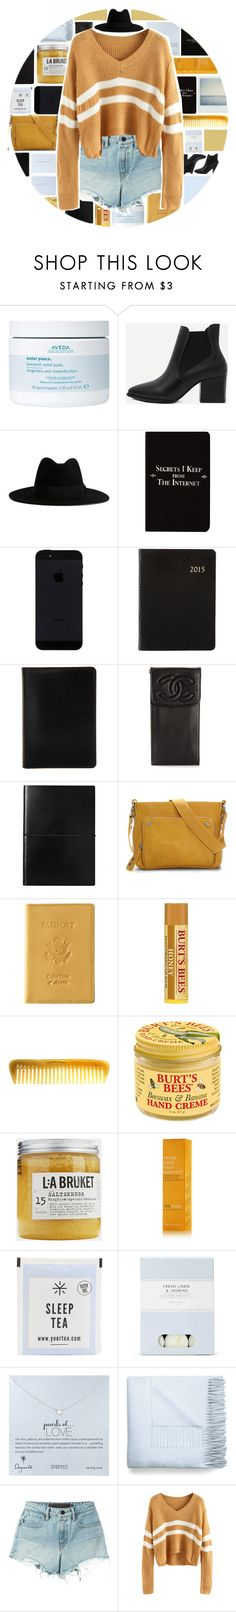 """Yellow"" by xgracieeee ❤ liked on Polyvore featuring Aveda, Yves Saint Laurent, Burberry, Rich and Damned, Barneys New York, Chanel, Ellington, Royce Leather, Hermès and Burt's Bees"